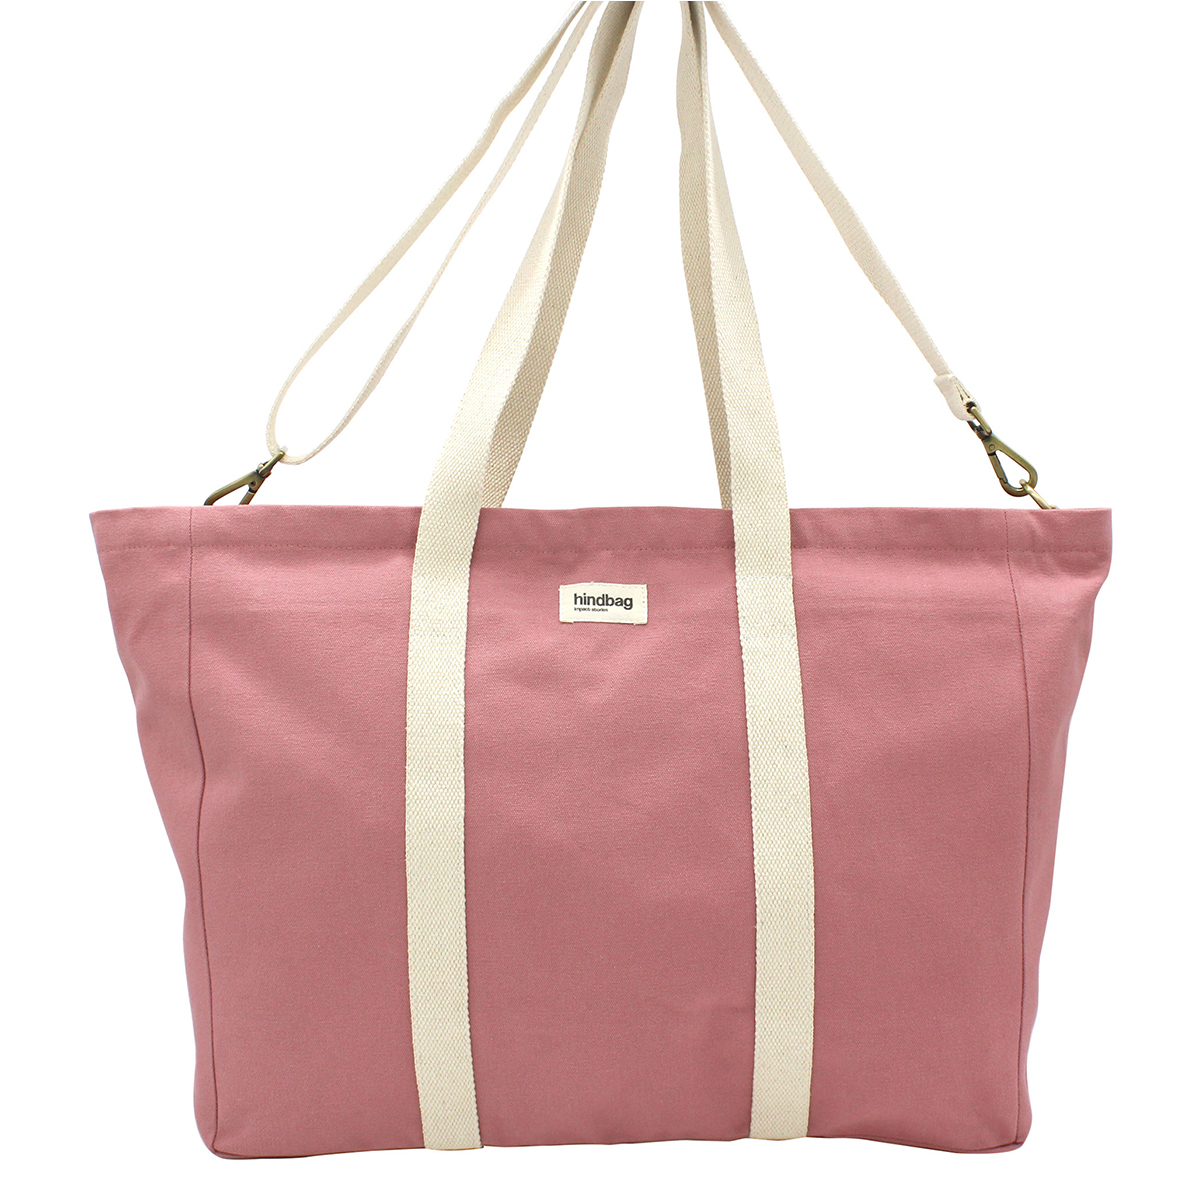 Sac à langer Sac Weekend Jean - Blush Sac Weekend Jean - Blush